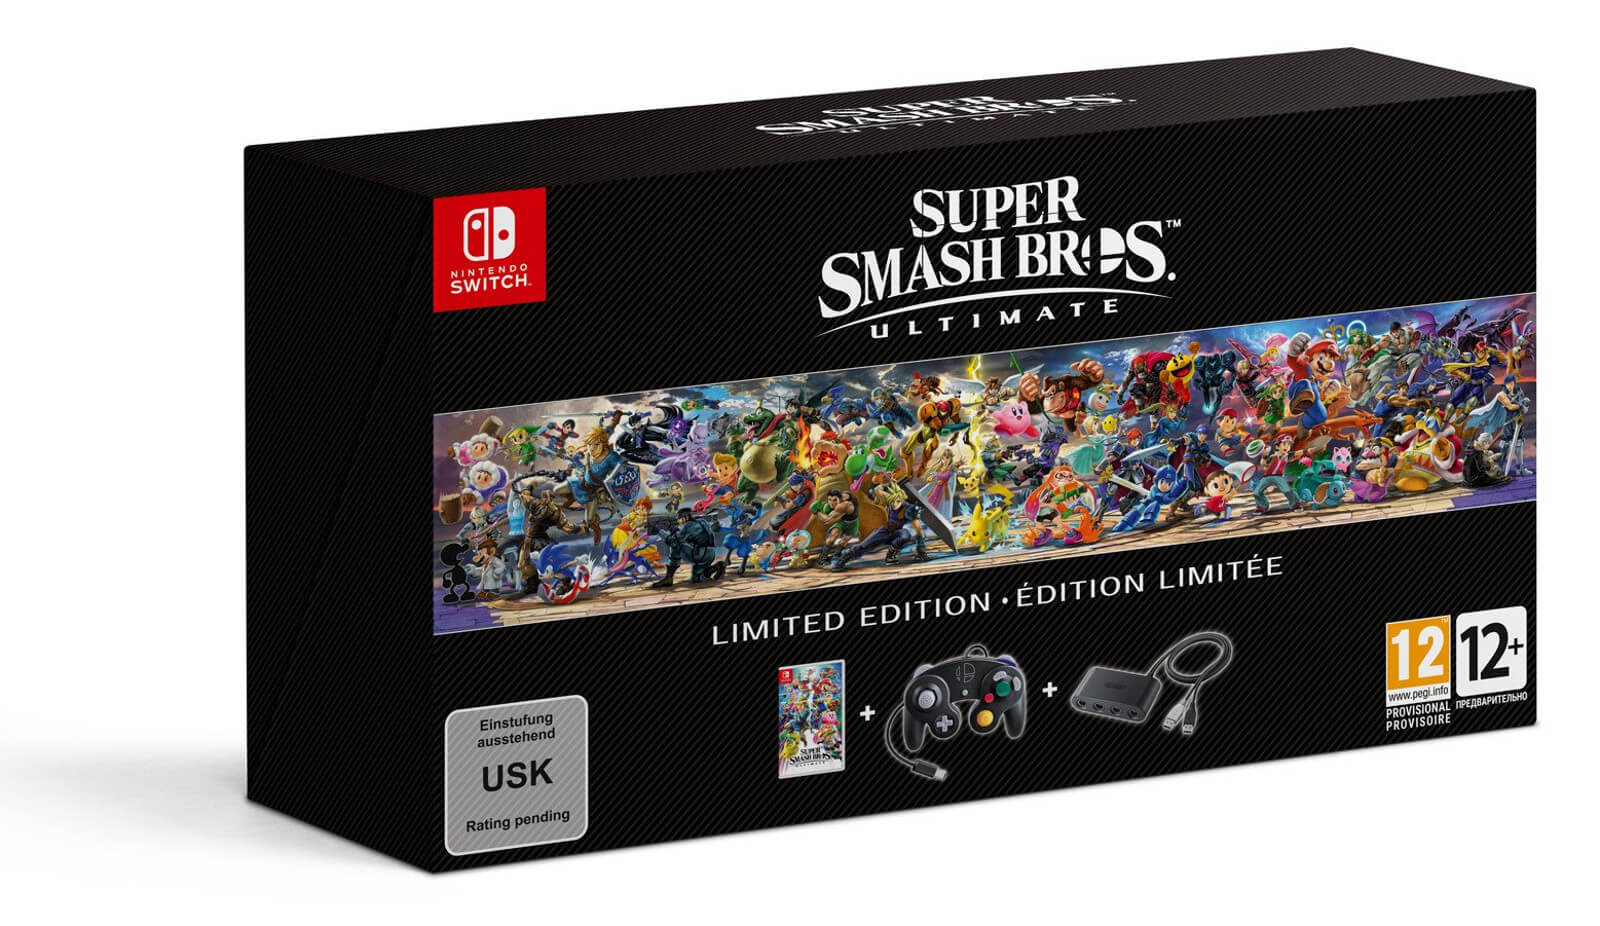 Caixa de Super Smash Bros. Ultimate - Limited Edition